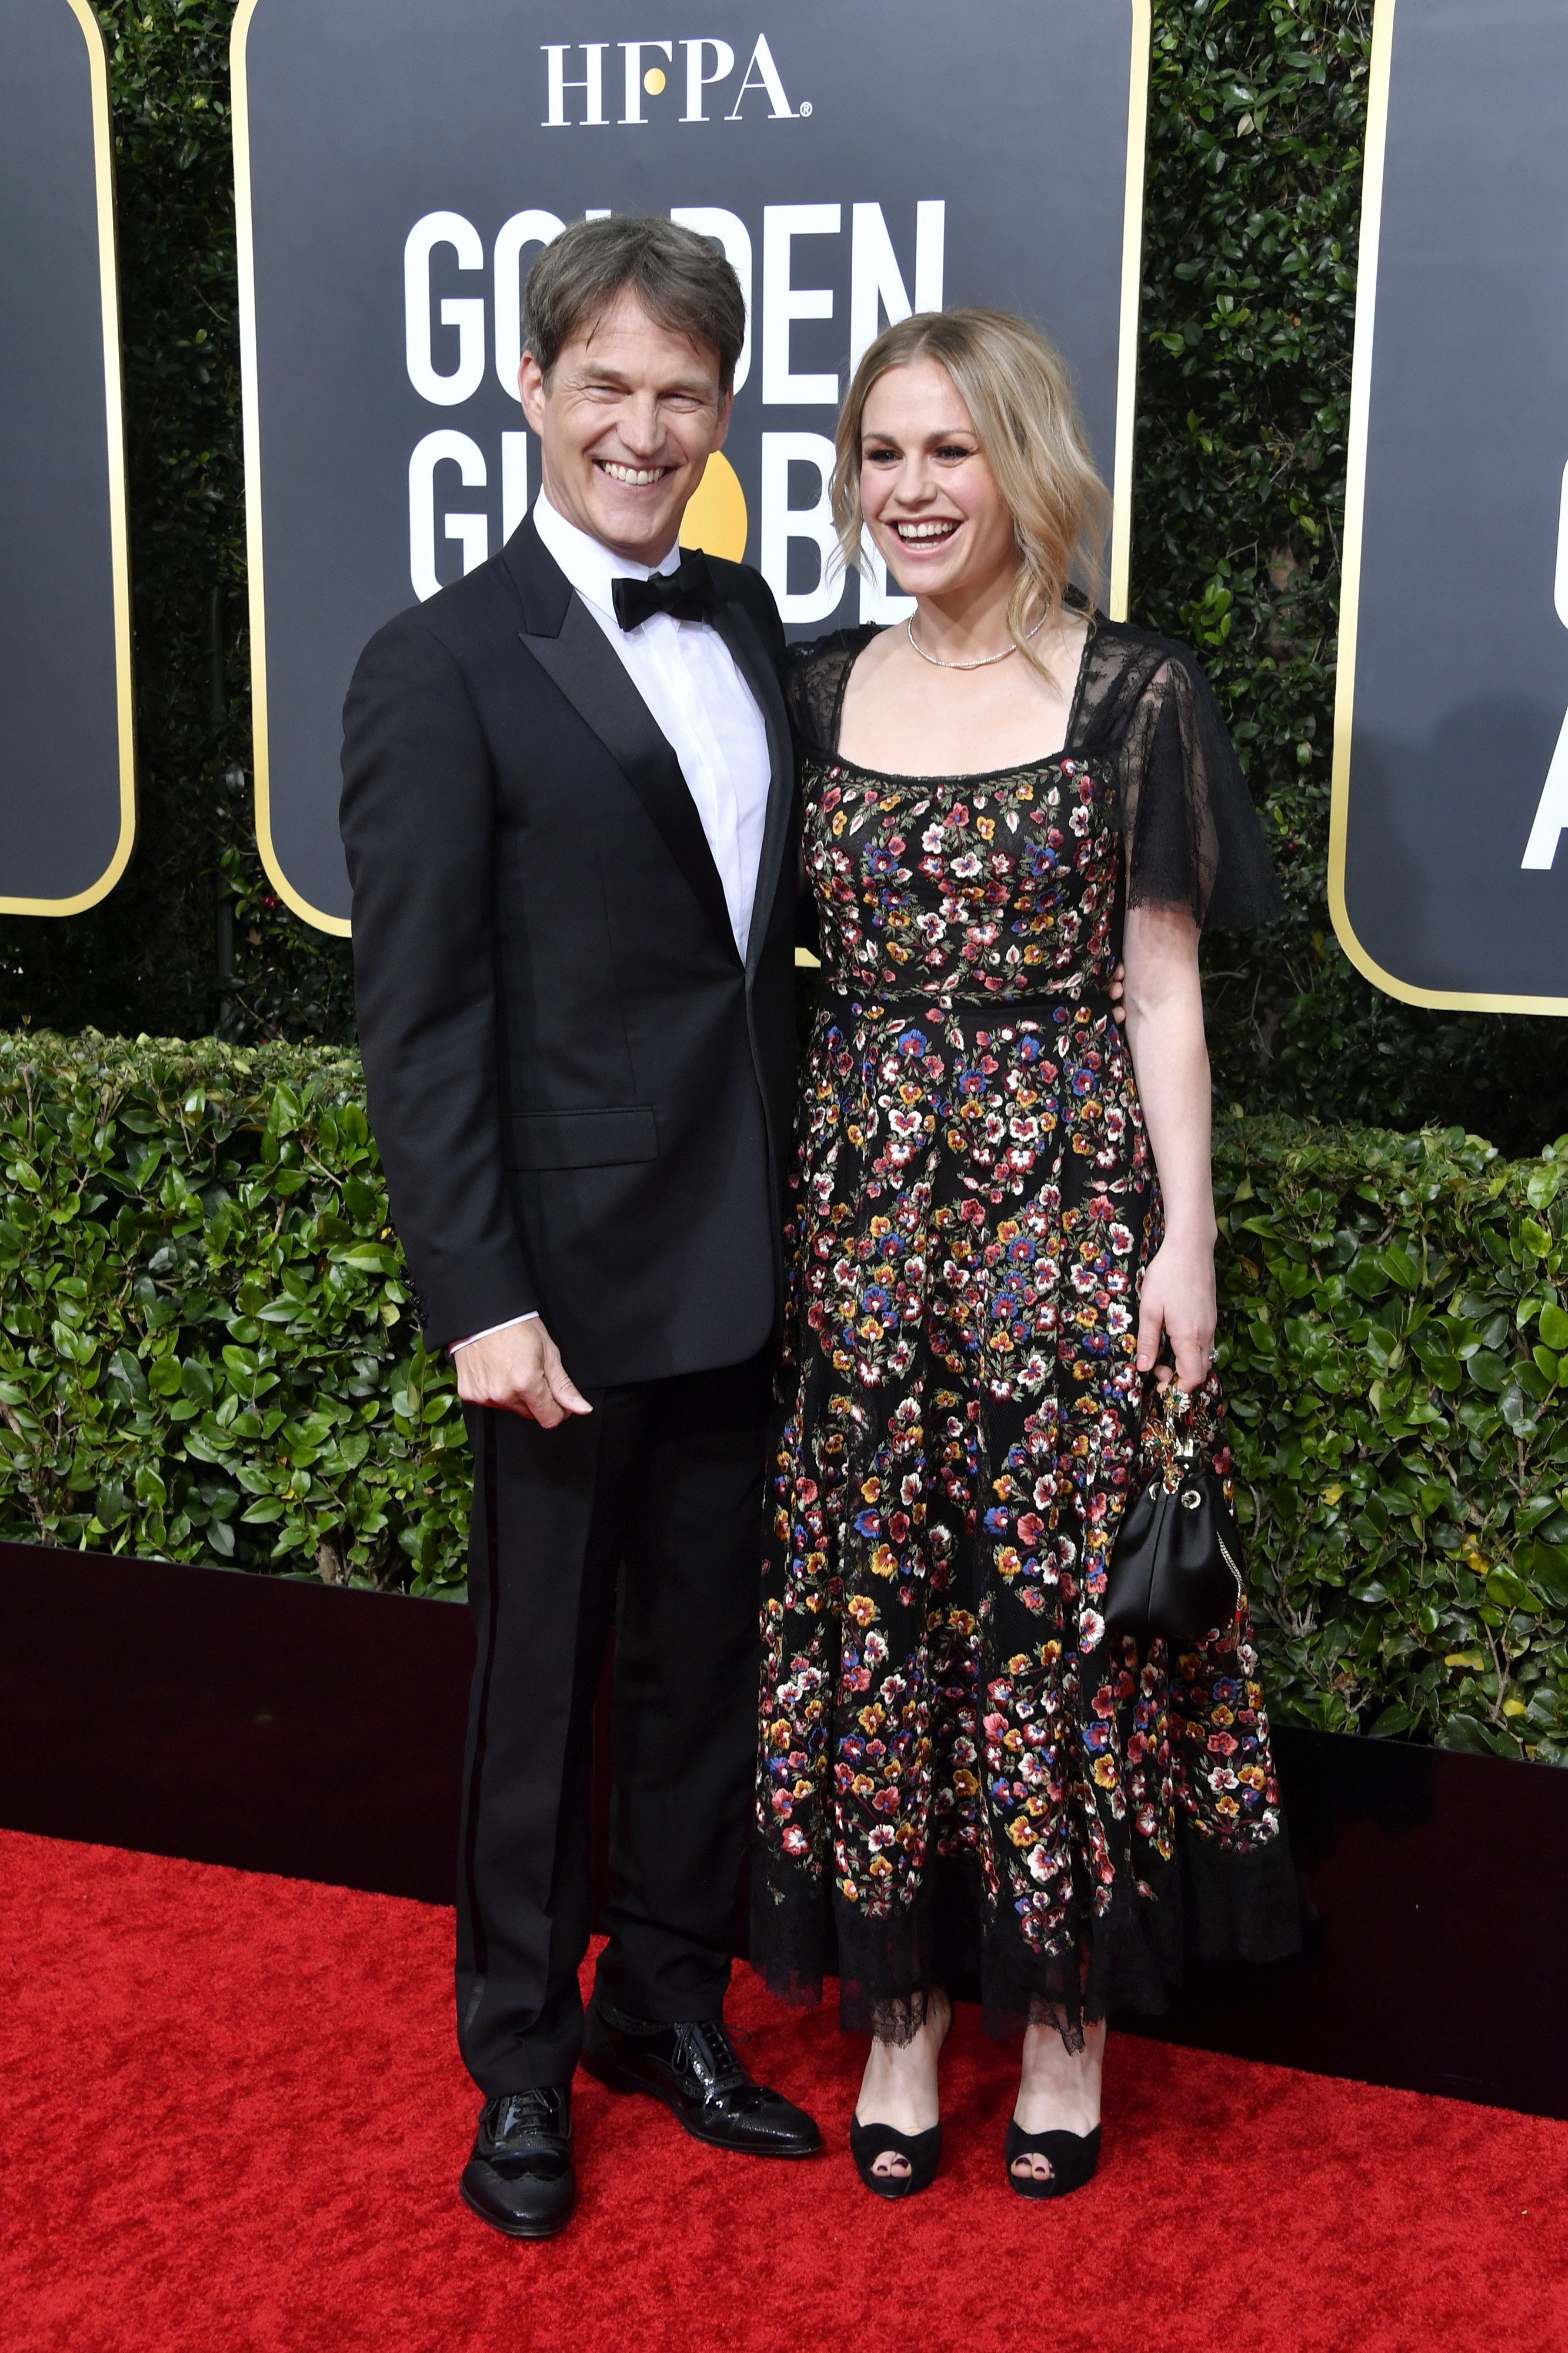 Golden Globes 2020 Cutest Couples On The Red Carpet